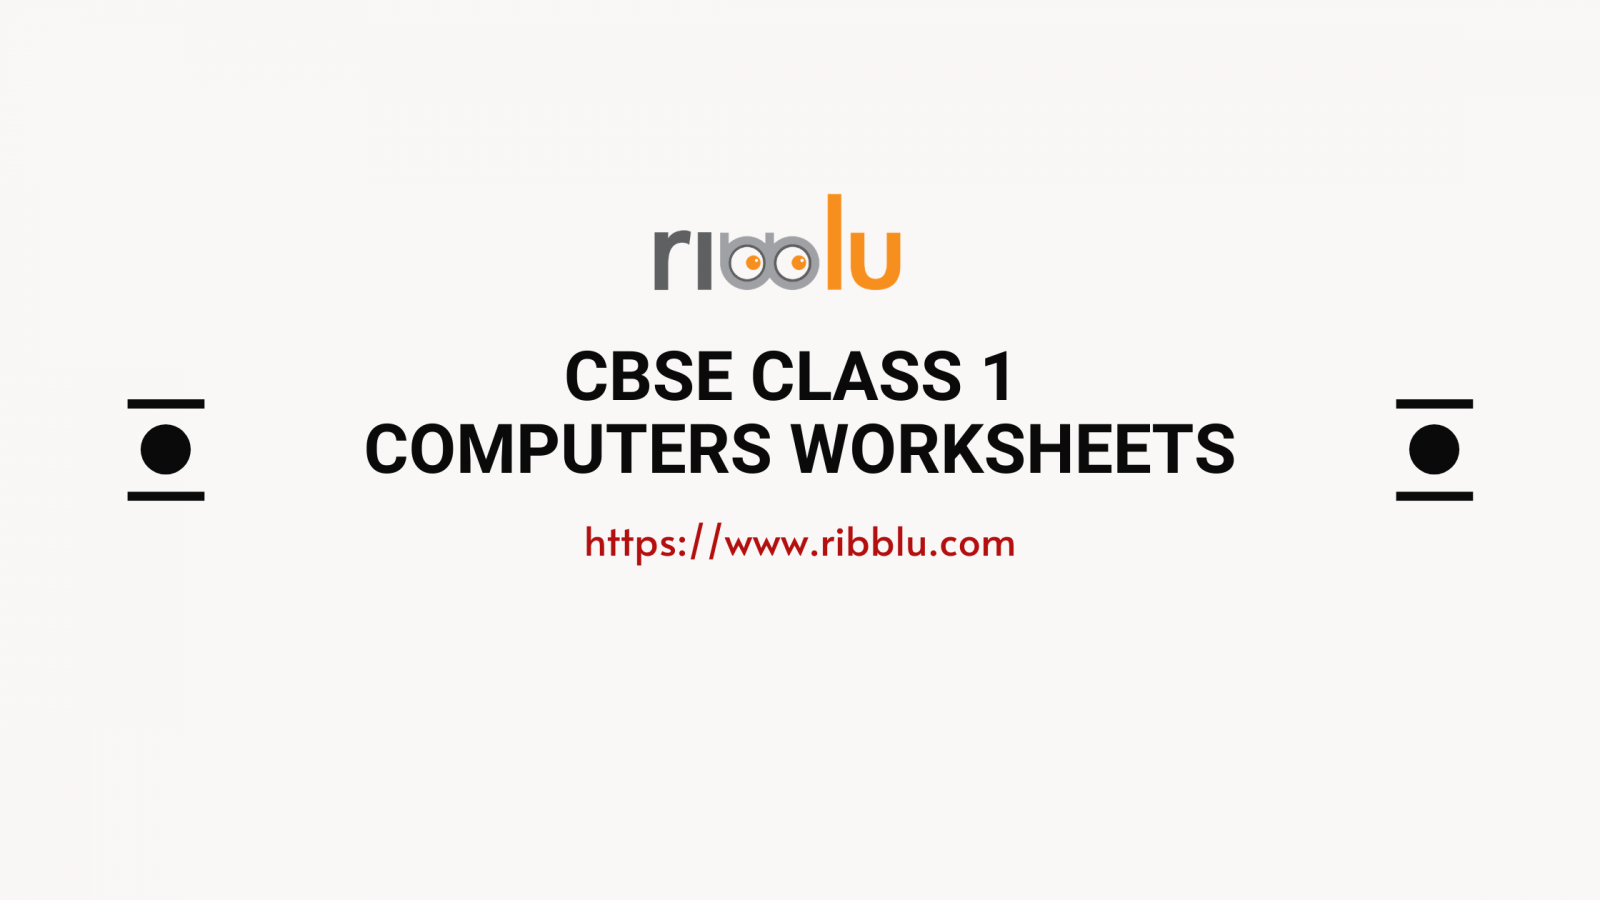 CBSE CLASS 1 COMPUTERS WORKSHEETS